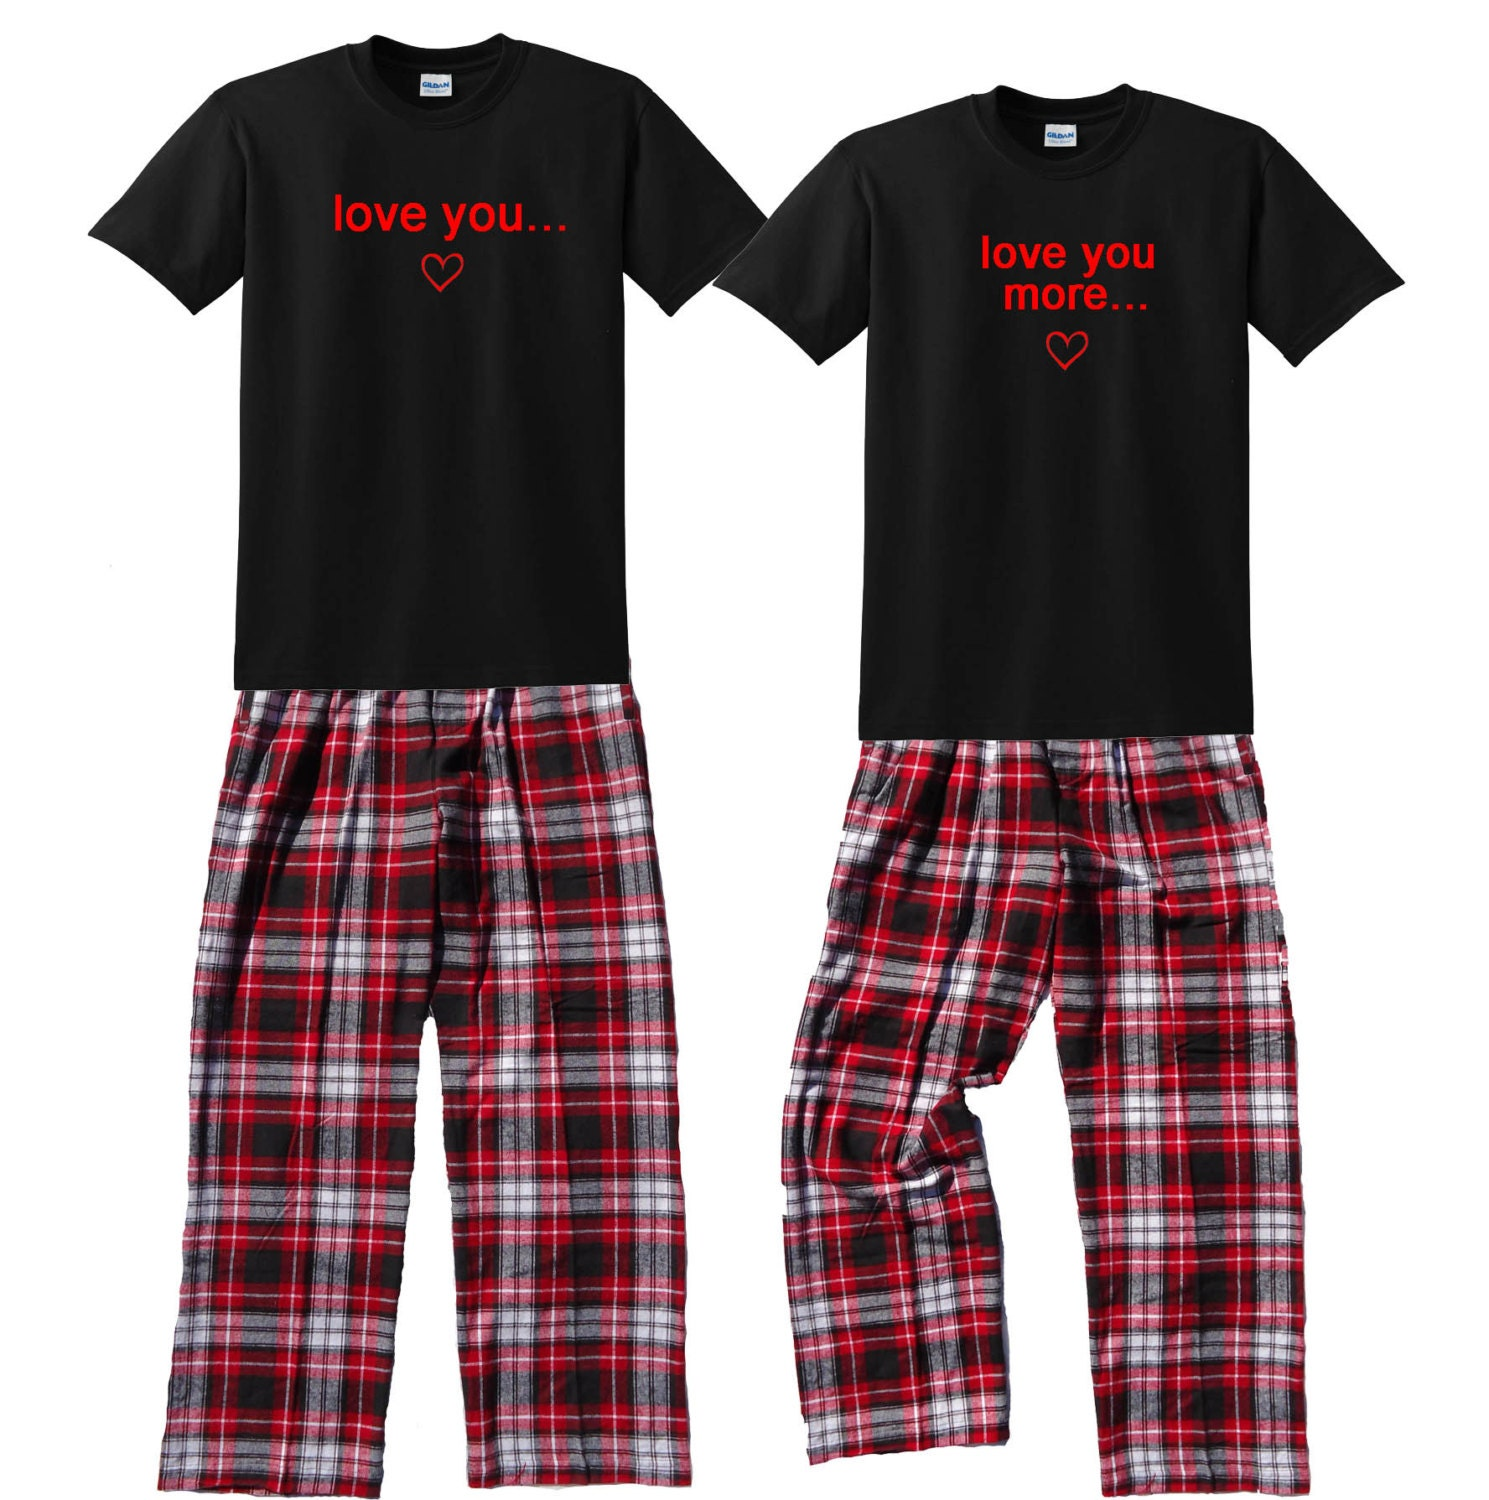 Love You Love You More Fun Matching Couples Pajamas for Him